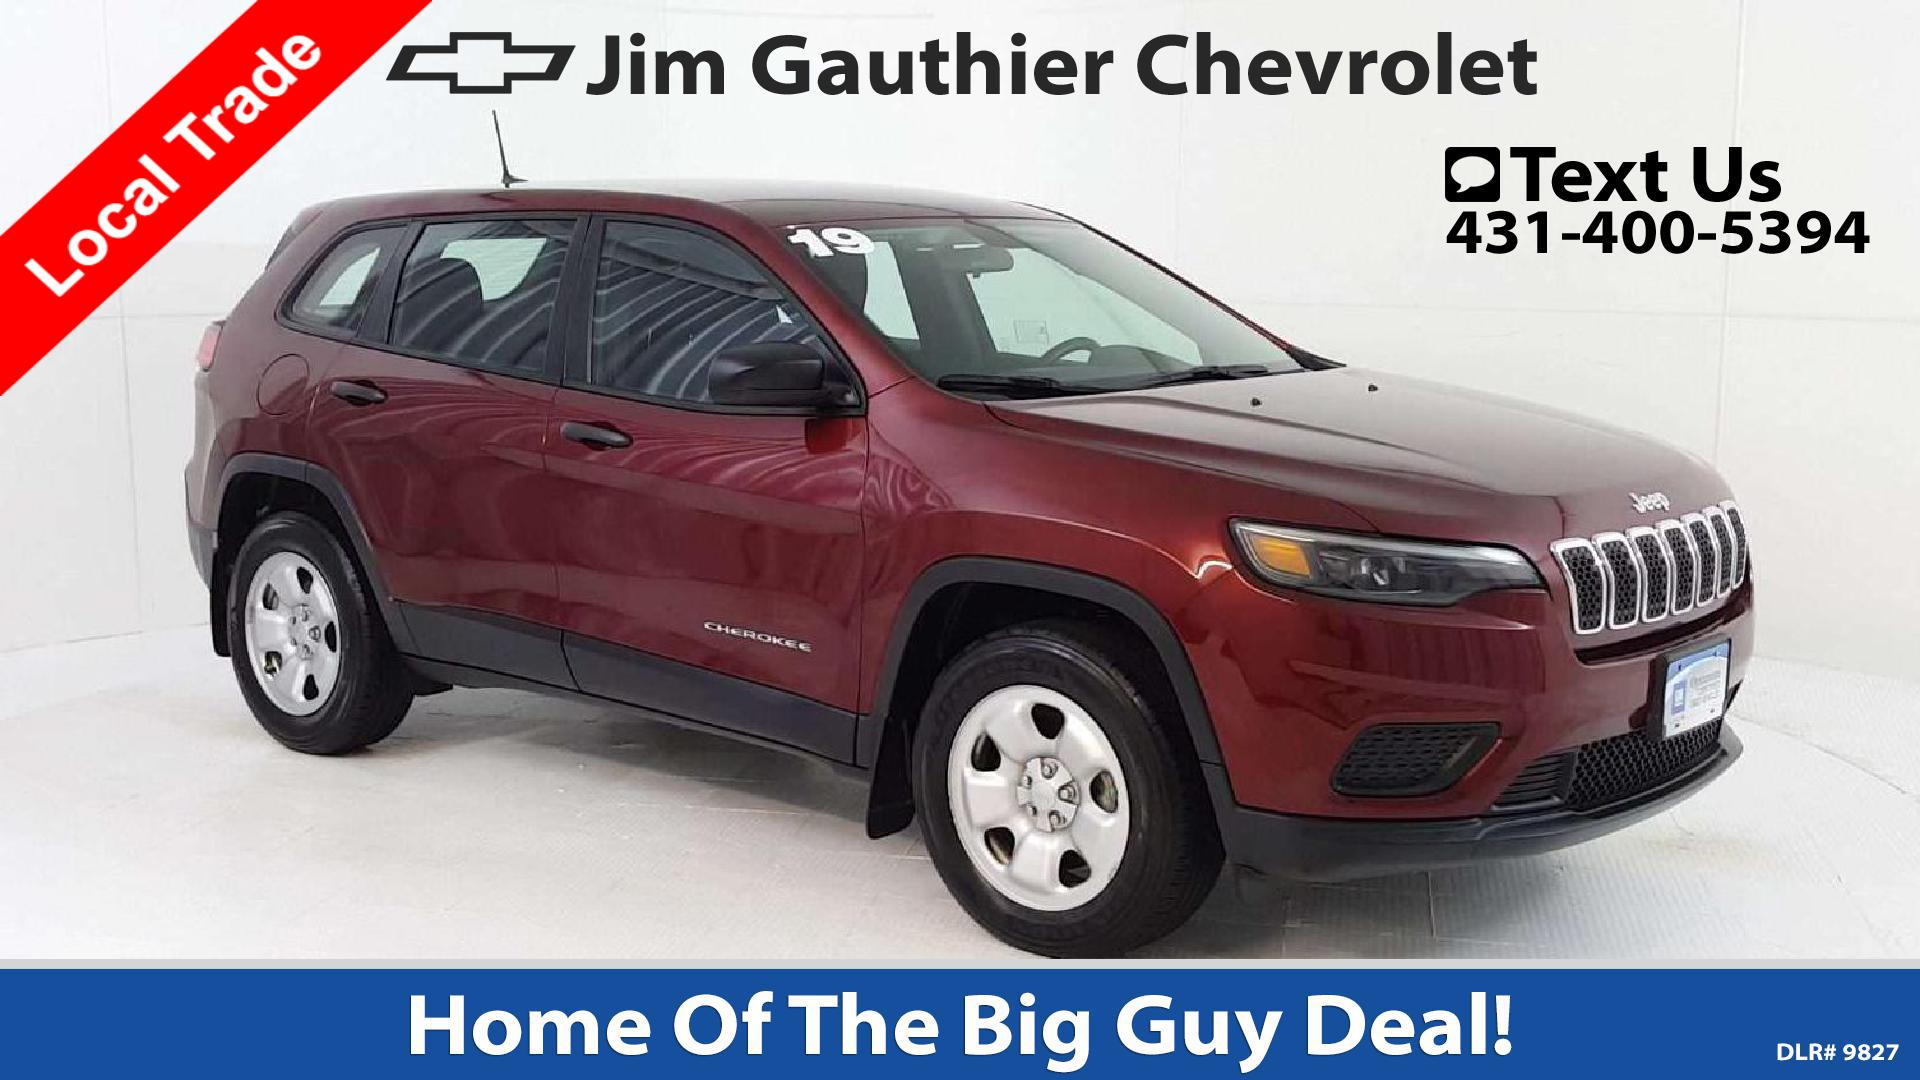 Used Cars For Sale In Winnipeg >> Jim Gauthier Chevrolet In Winnipeg Used Cars Trucks And